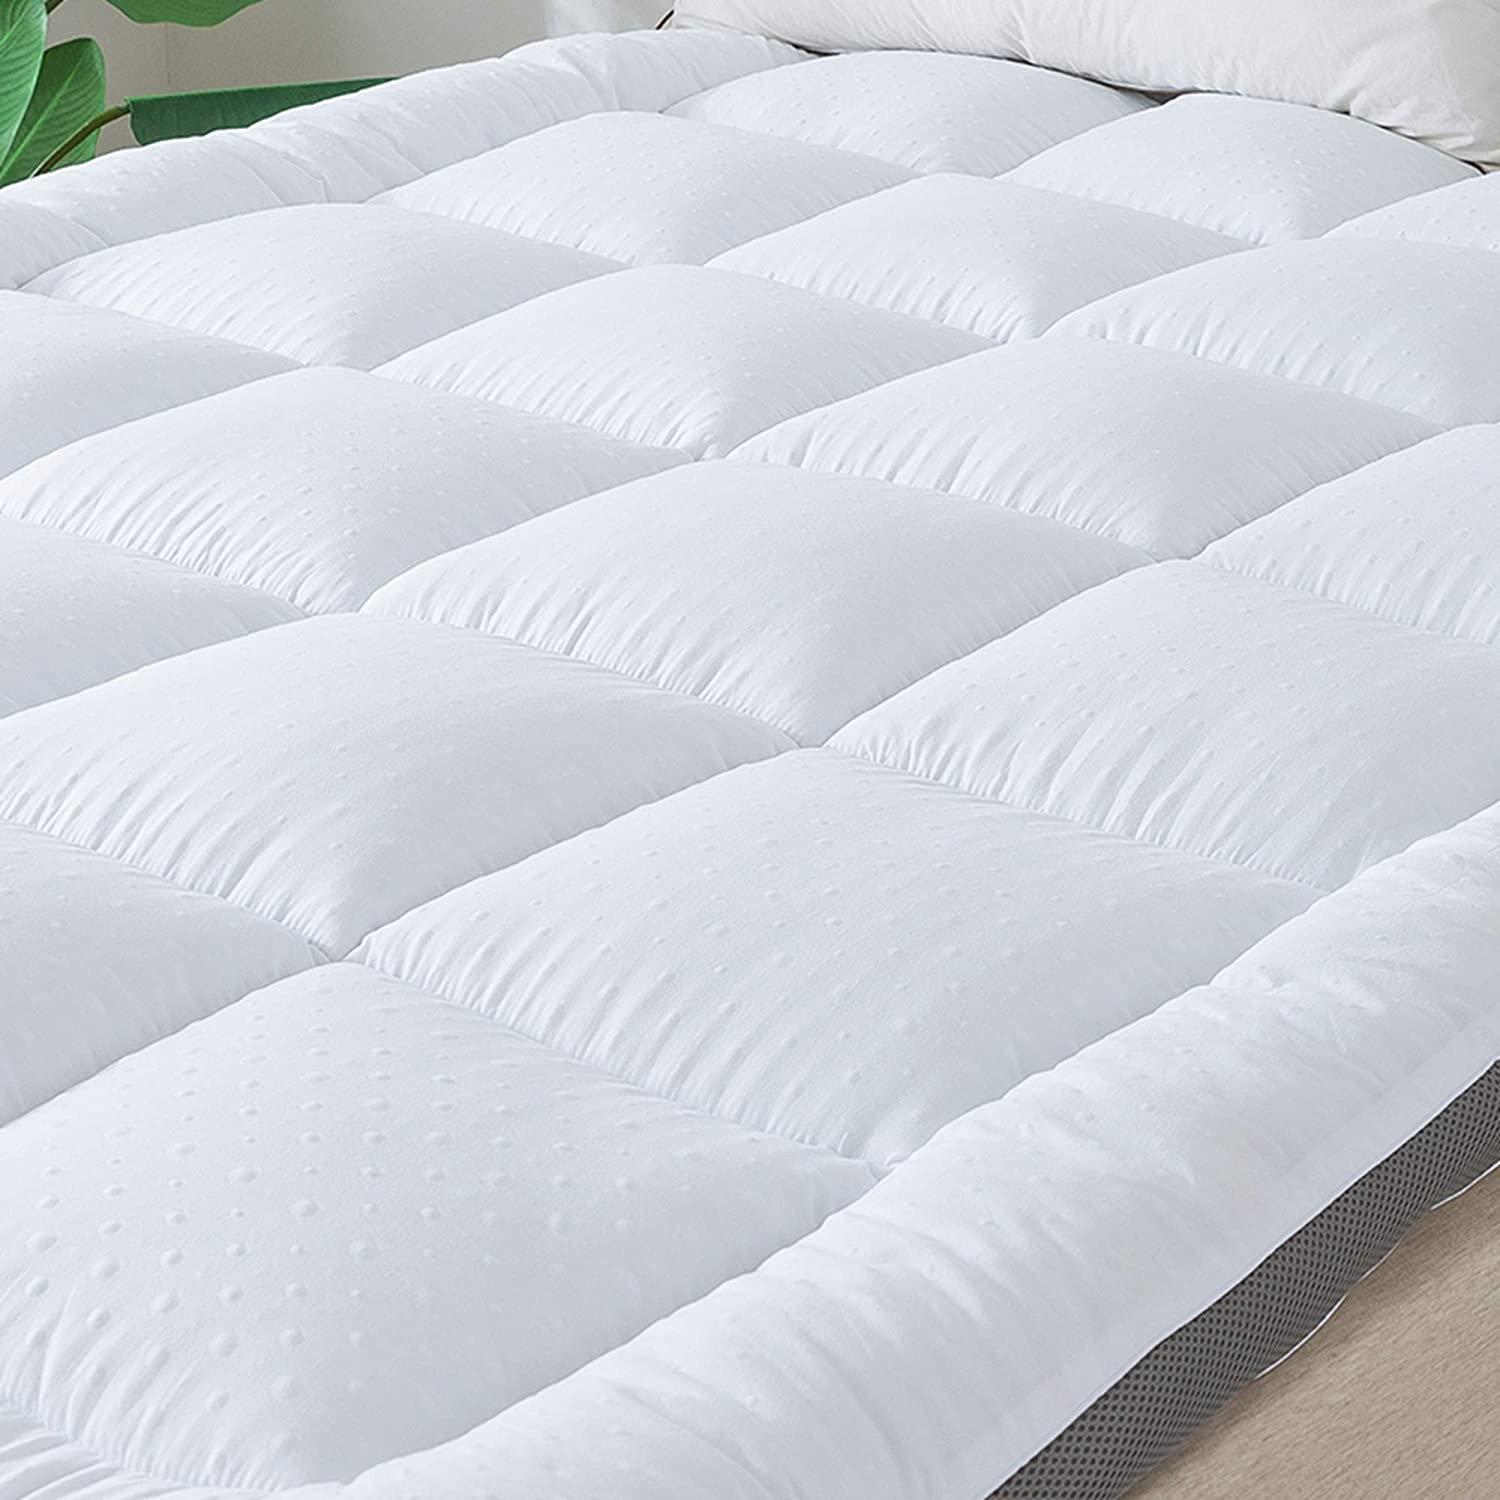 SUFUEE Mattress Topper Full Air-Flow Fabric Extra Thick Mattress Pad Quilted Down Alternative Pillow Top Mattress Cover Plush Hotel Quality